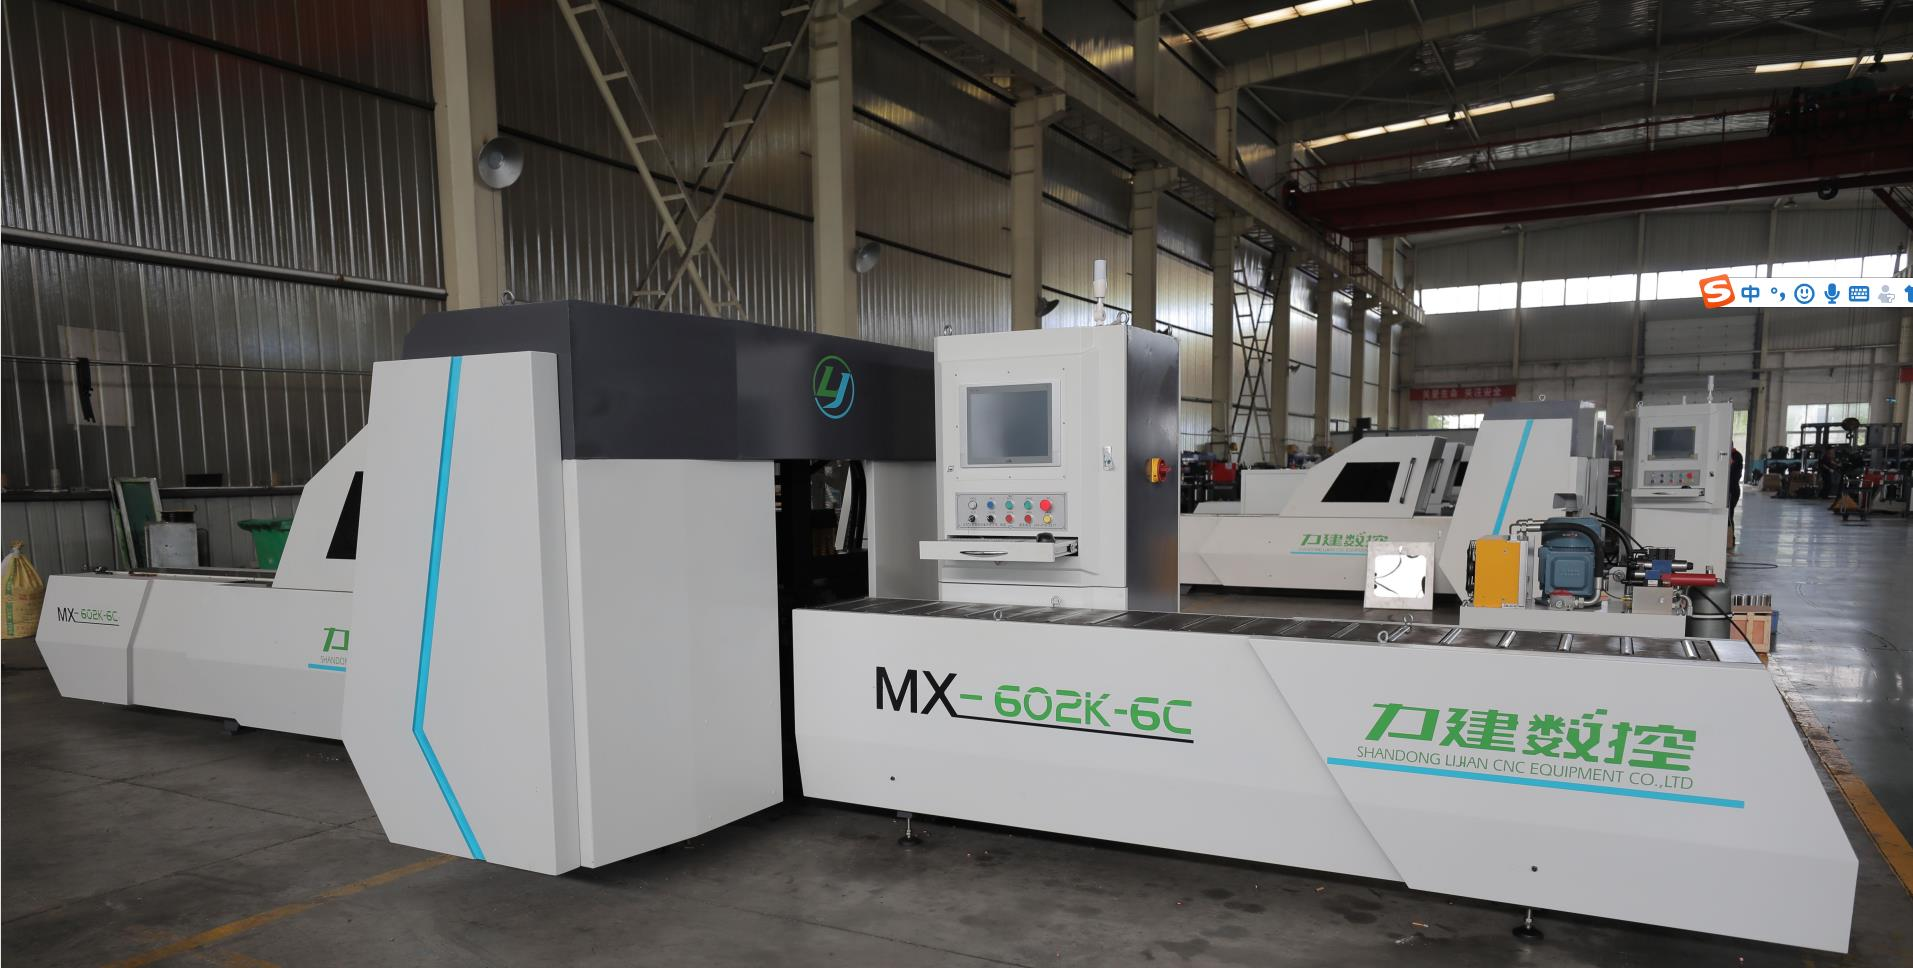 MX402K-7C copper busway processing machine CNC punching cutting machine for copper busway